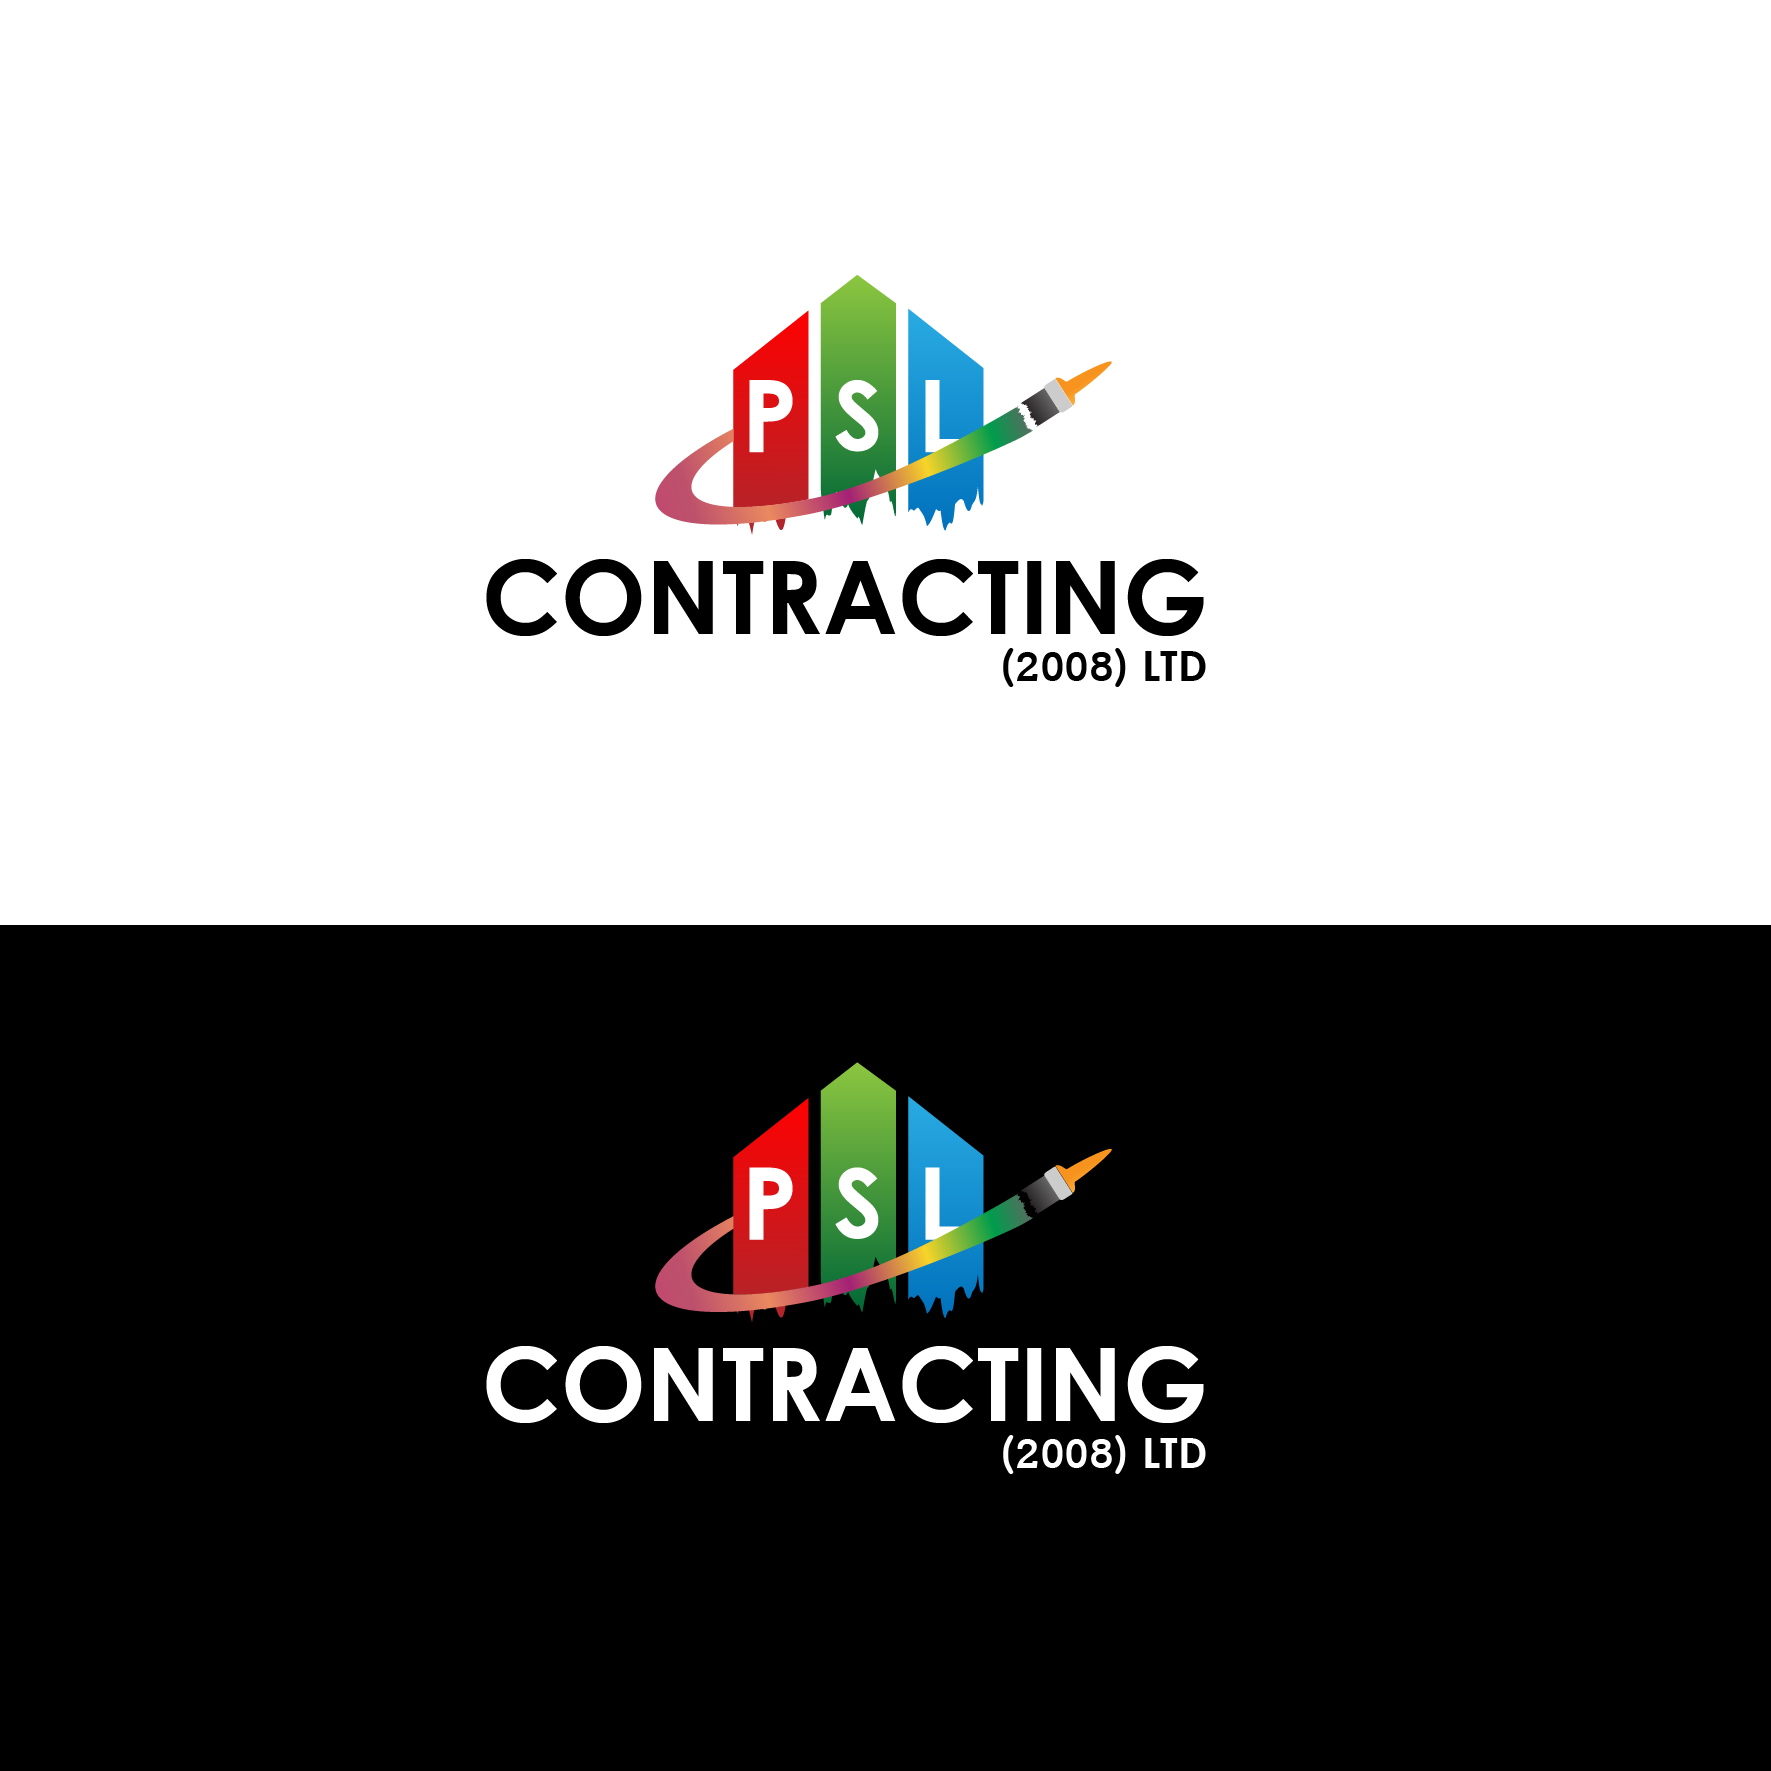 Logo Design by 3draw - Entry No. 5 in the Logo Design Contest PSL Contracting (2008) Ltd. Logo Design.